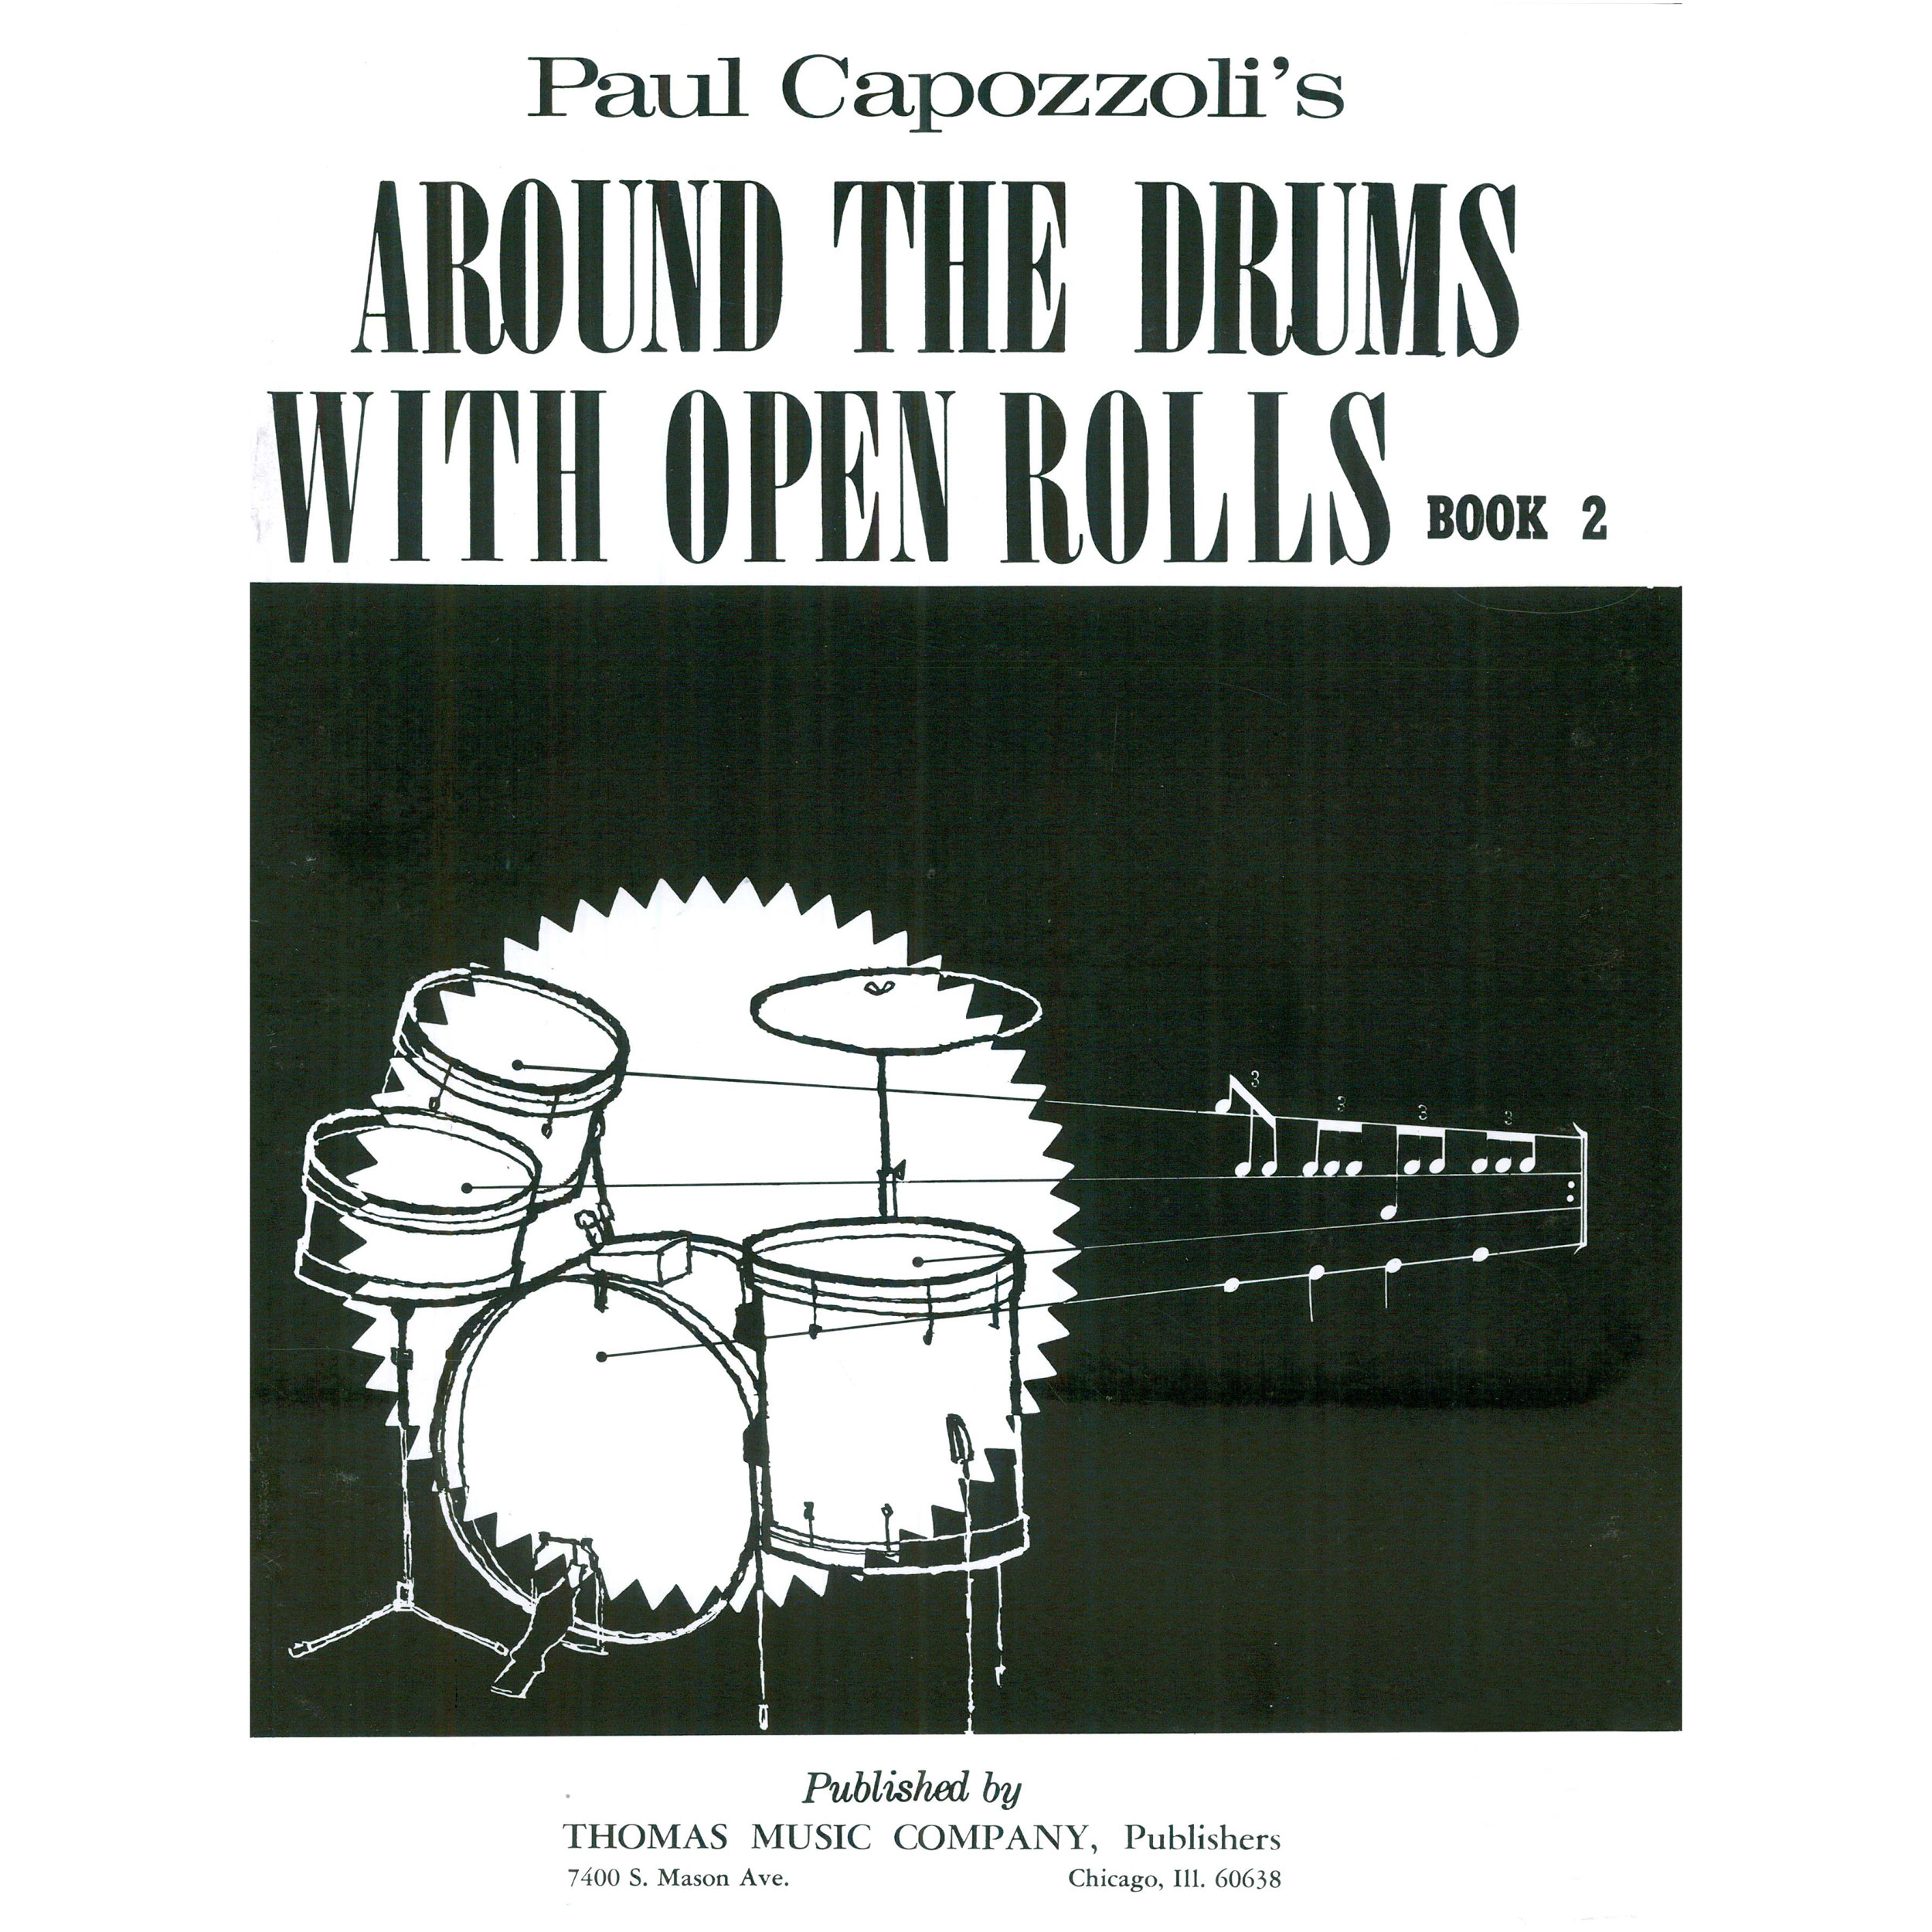 Around The Drums With Open Rolls by Paul Capozzoli